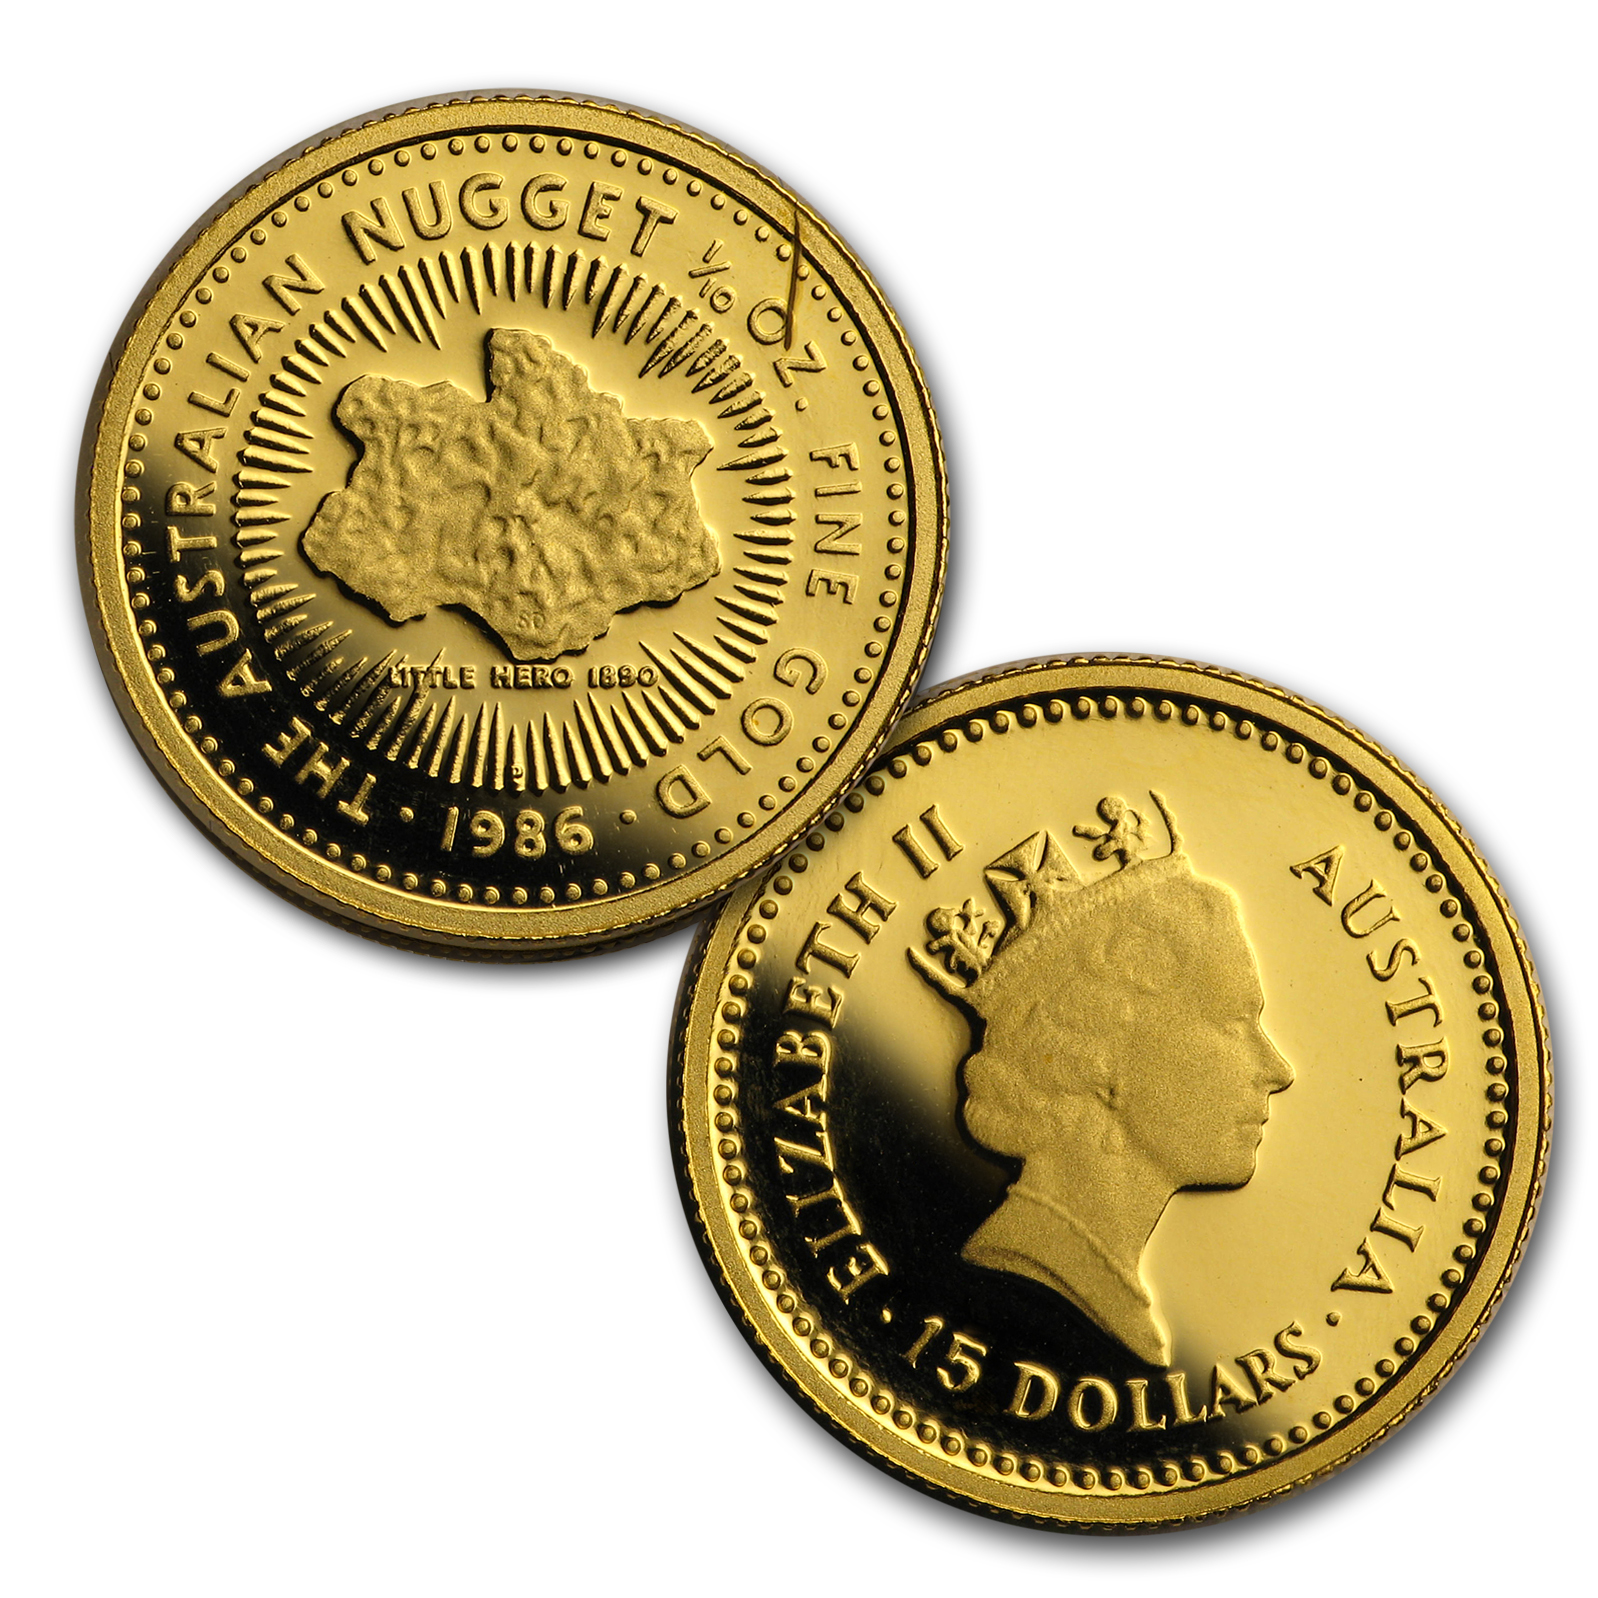 1986 Australia 4-Coin Gold Nugget Proof Set